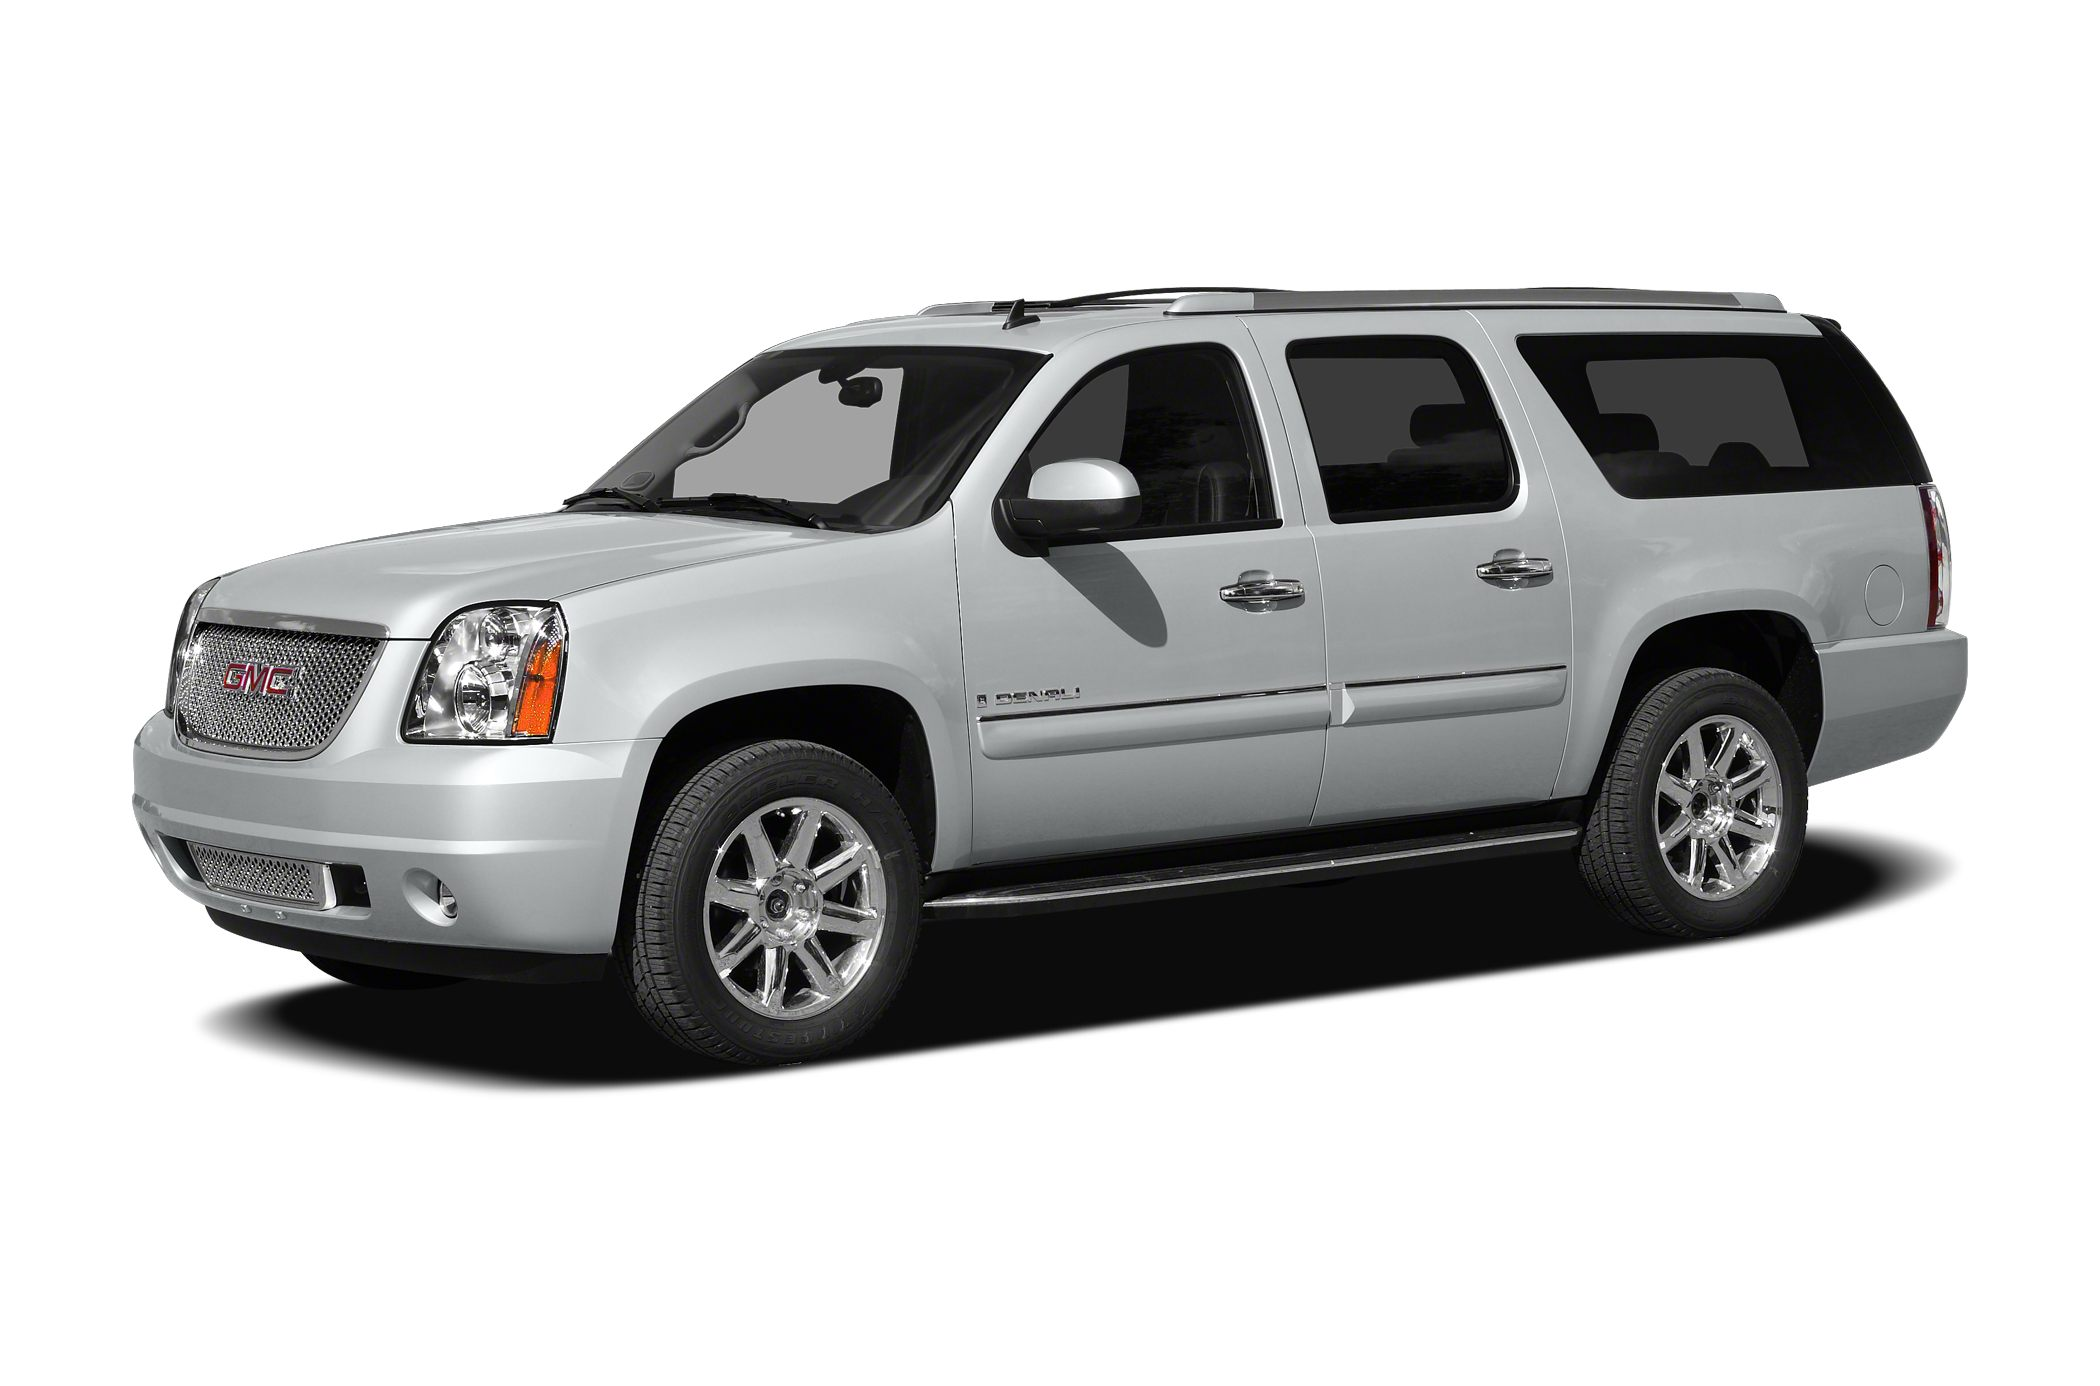 2010 GMC Yukon XL Denali SUV for sale in Denver for $30,888 with 53,842 miles.